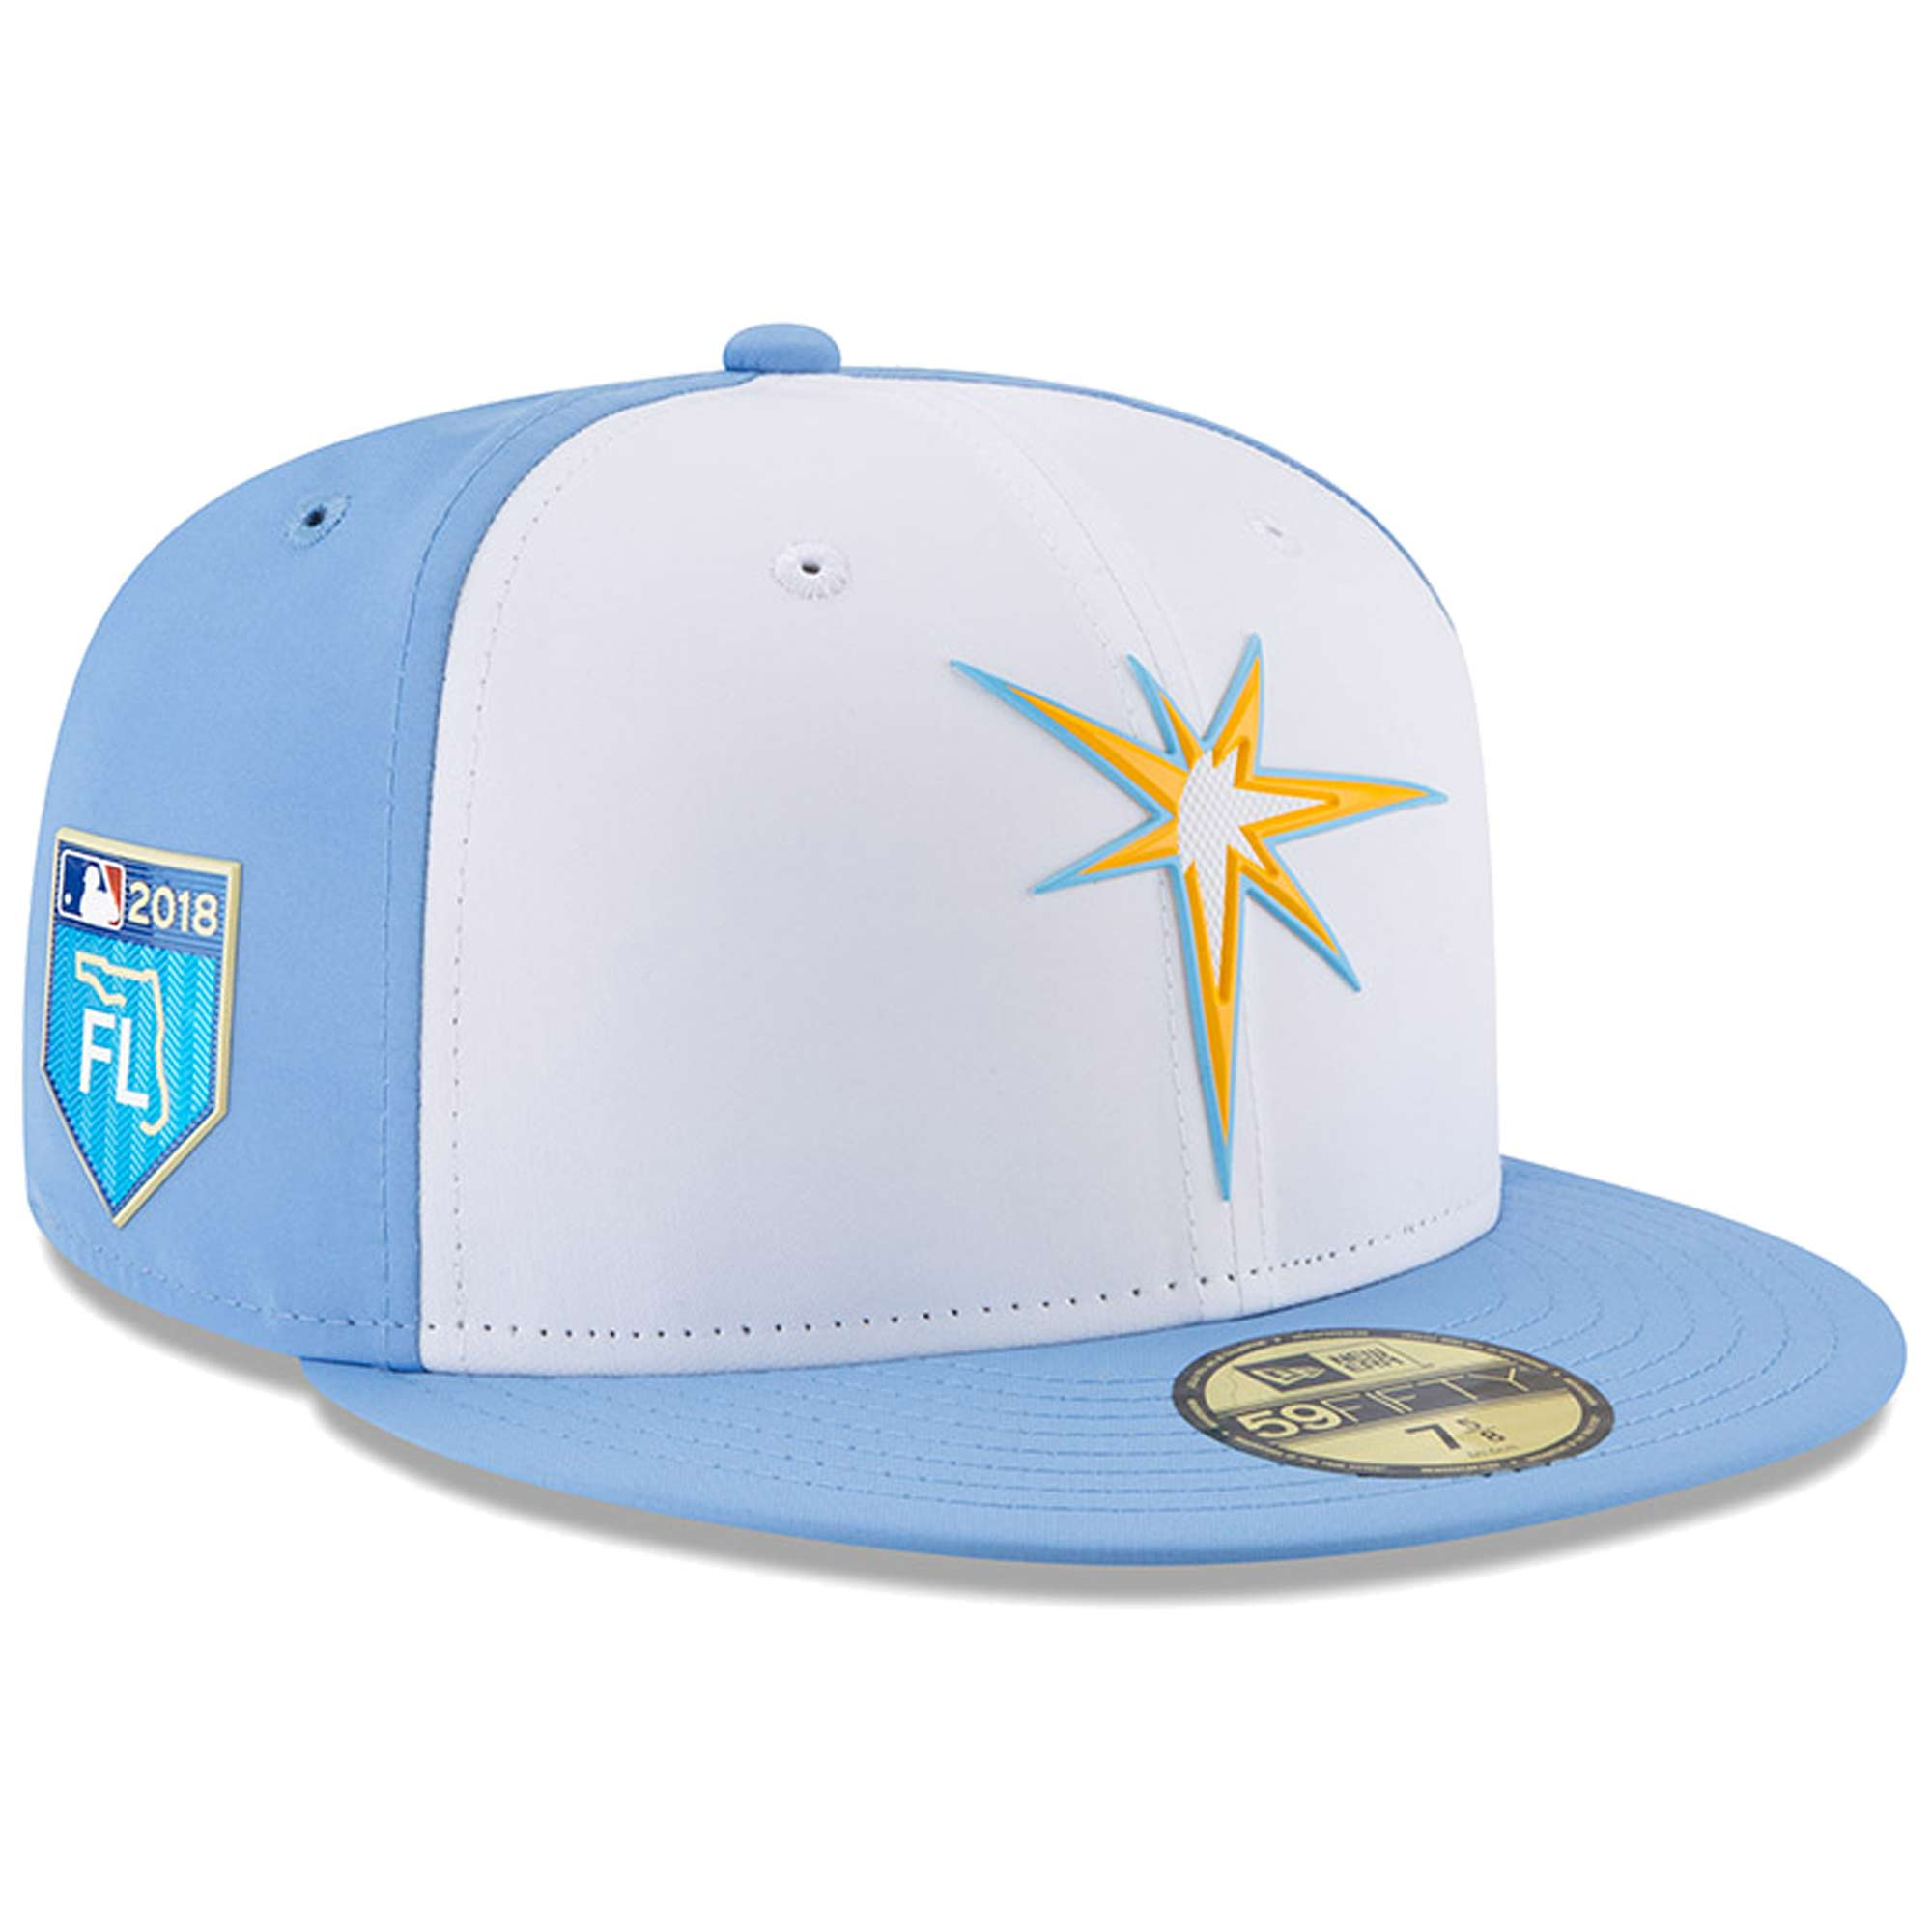 Men's New Era White Tampa Bay Rays 2018 Spring Training Collection Prolight 59FIFTY Fitted Hat